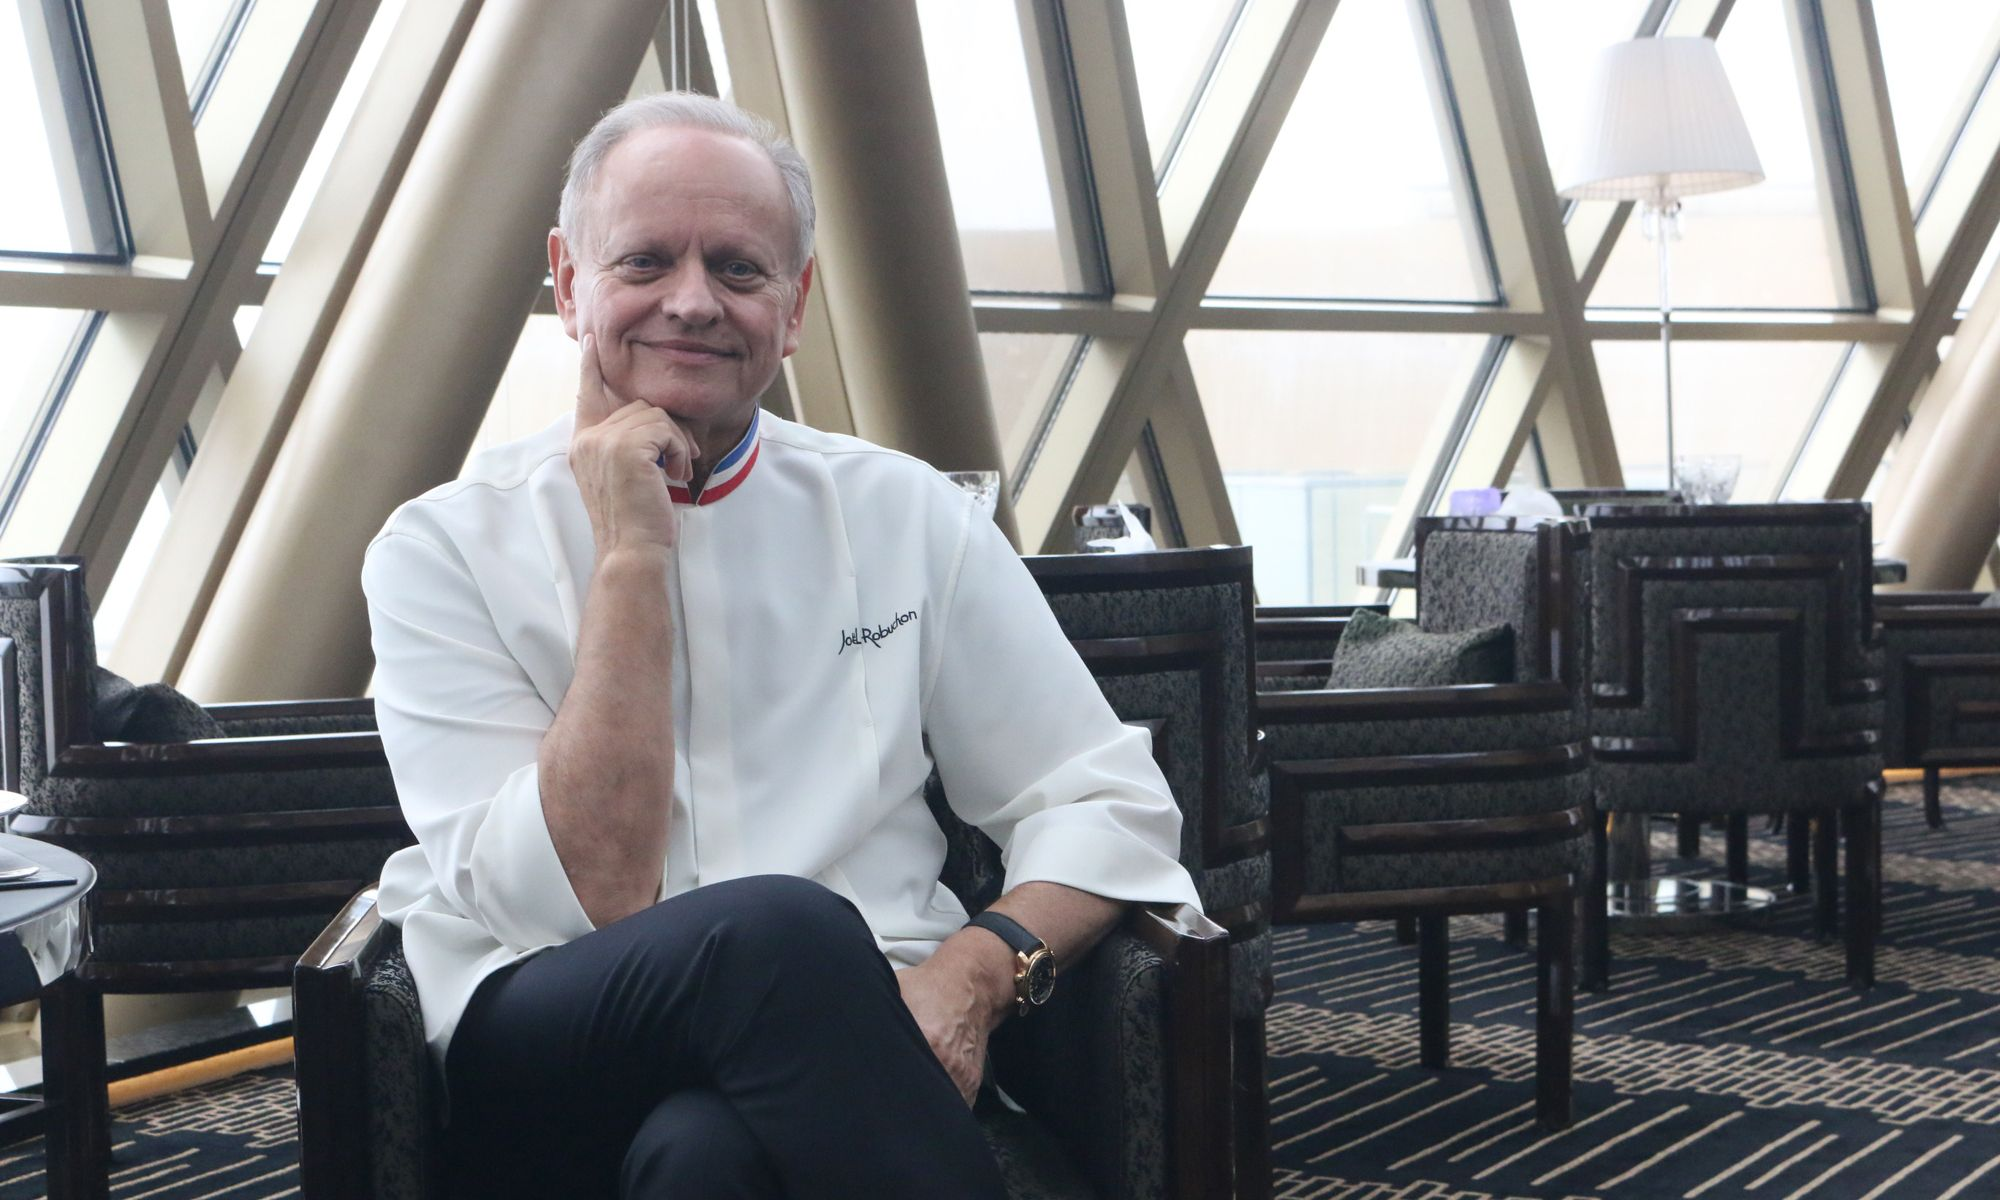 Remembering Joël Robuchon, The Man Who Revolutionised The World Of Food